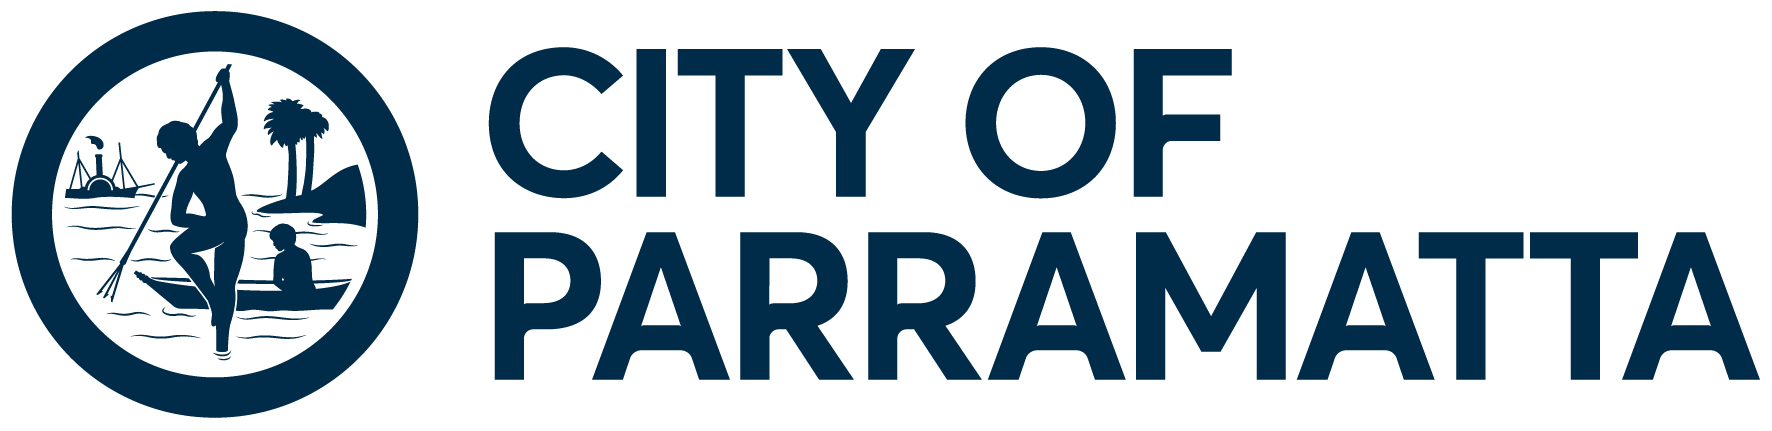 Citry of Parramatta logo